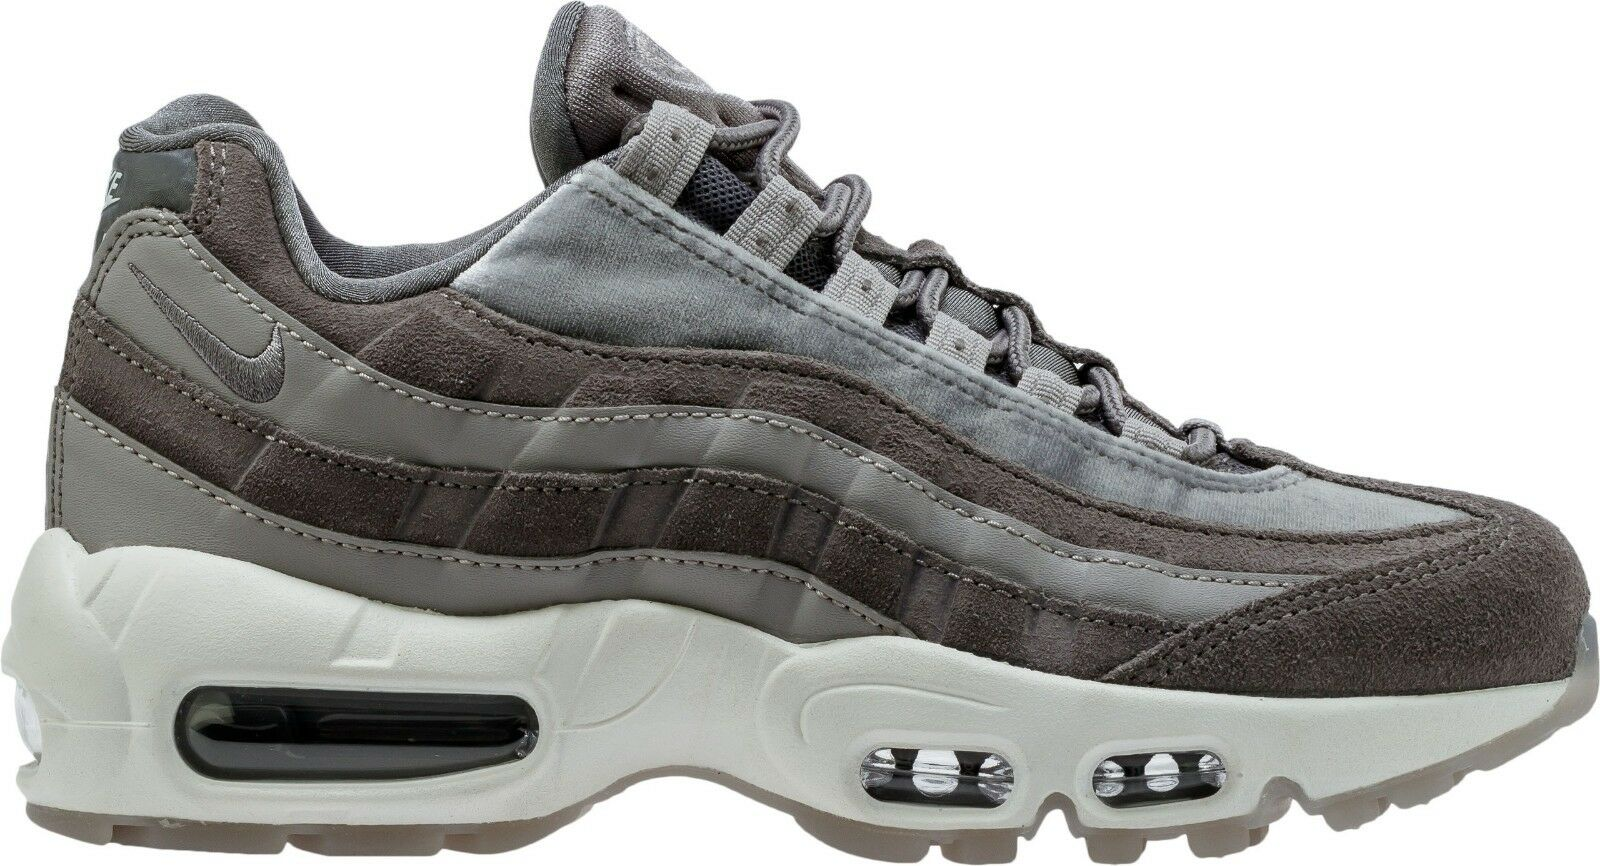 Nike Air Max 95 LX Luxe Gunsmoke Grey Suede Leather Wmns SZ 8  [AA1103-003]